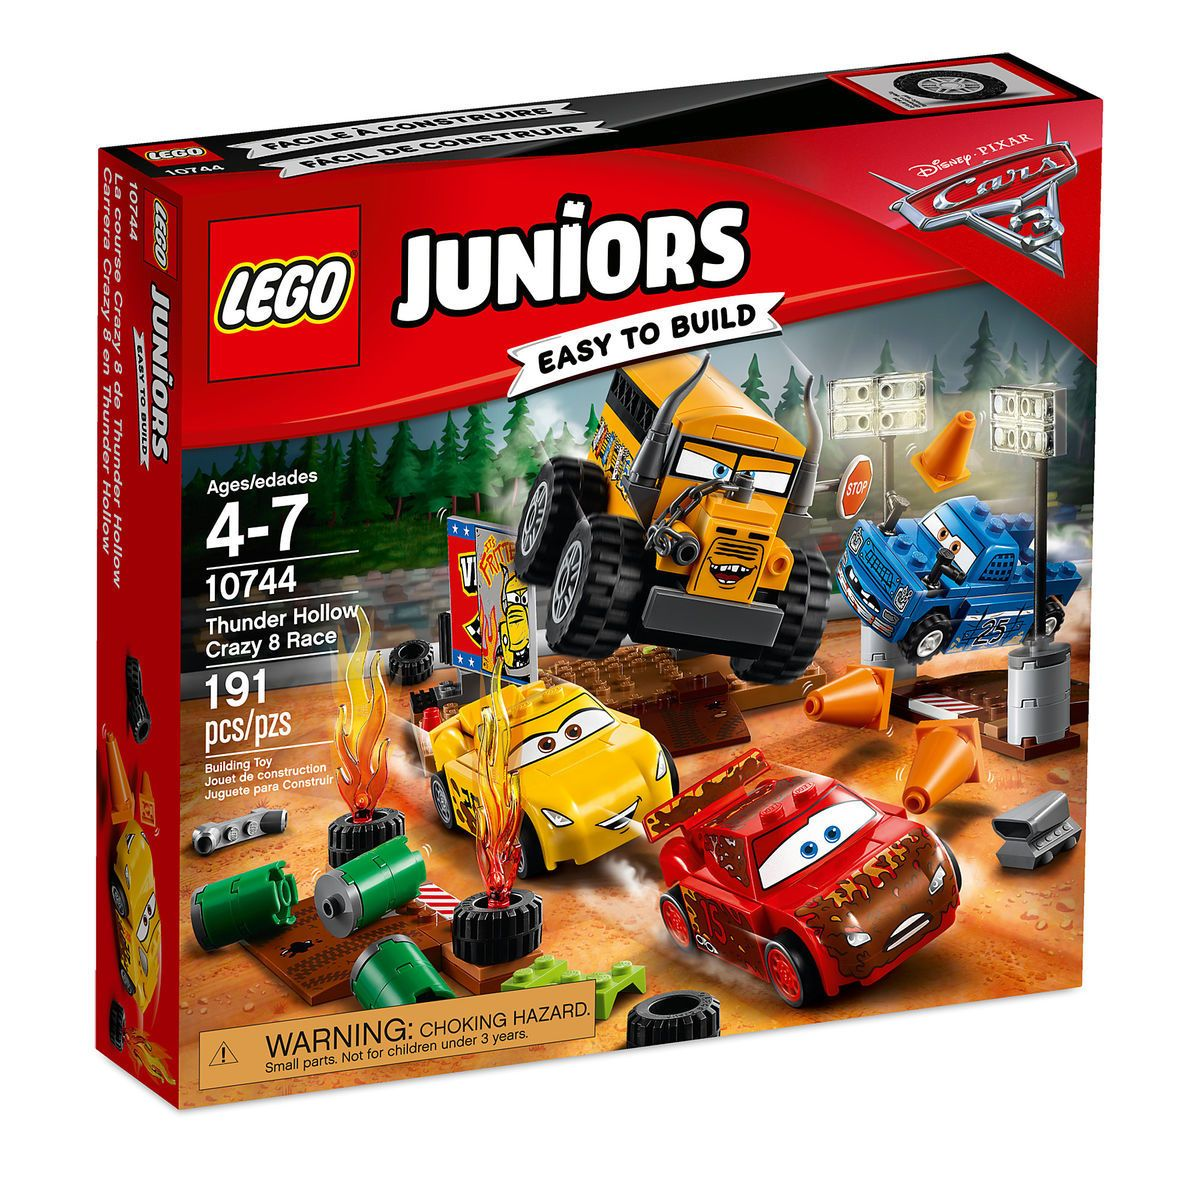 Thunder Hollow Crazy 8 Race Playset By Lego Juniors Cars 3 Lego Juniors Lego Junior Sets Disney Cars 3